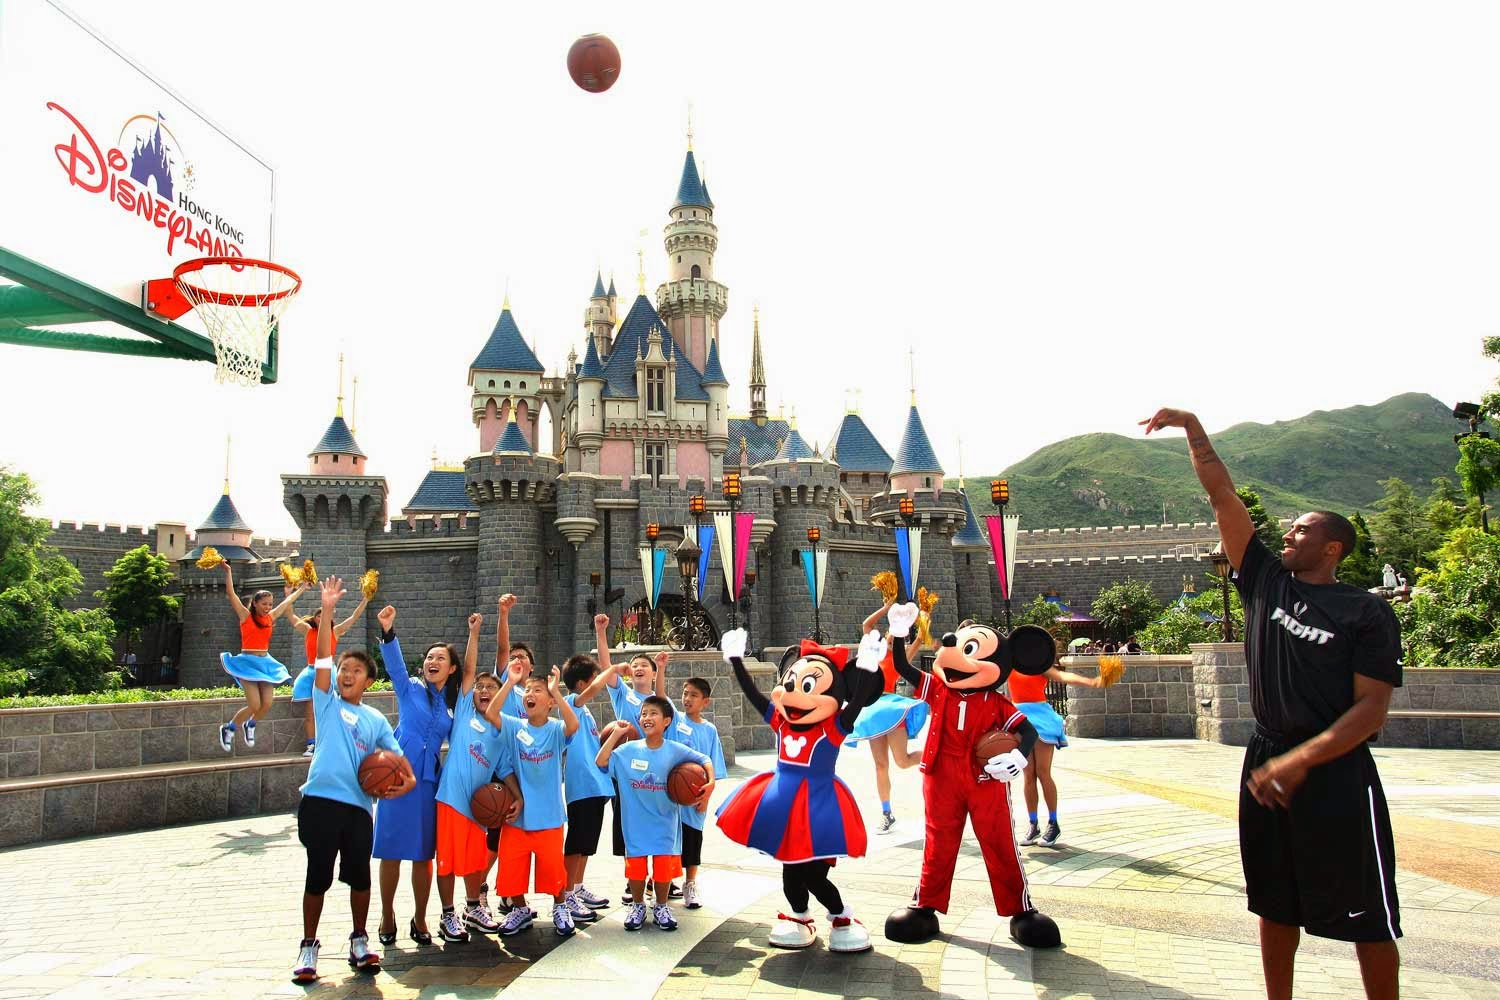 hong kong disney (cnn) — when hong kong disneyland resort announced it would be saying a permanent good night to its sleeping beauty castle on january 1, 2018, fans around the world let out a collective gasp.